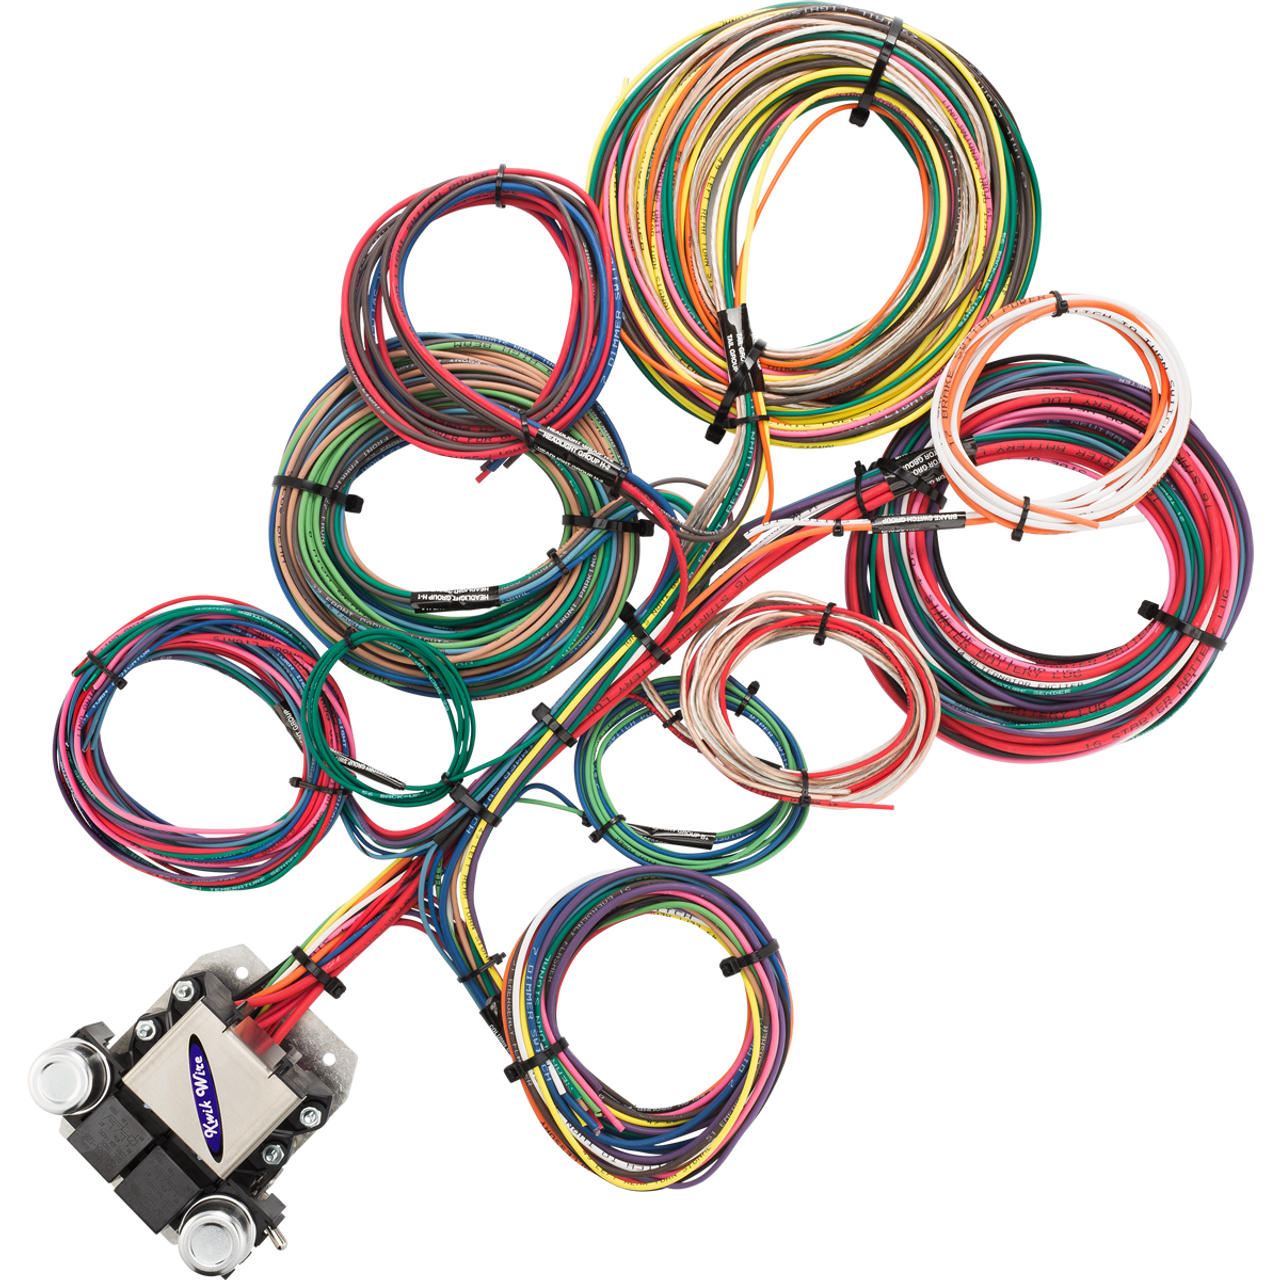 8 Circuit Wire Harness - KwikWire.com | Electrify Your Ride